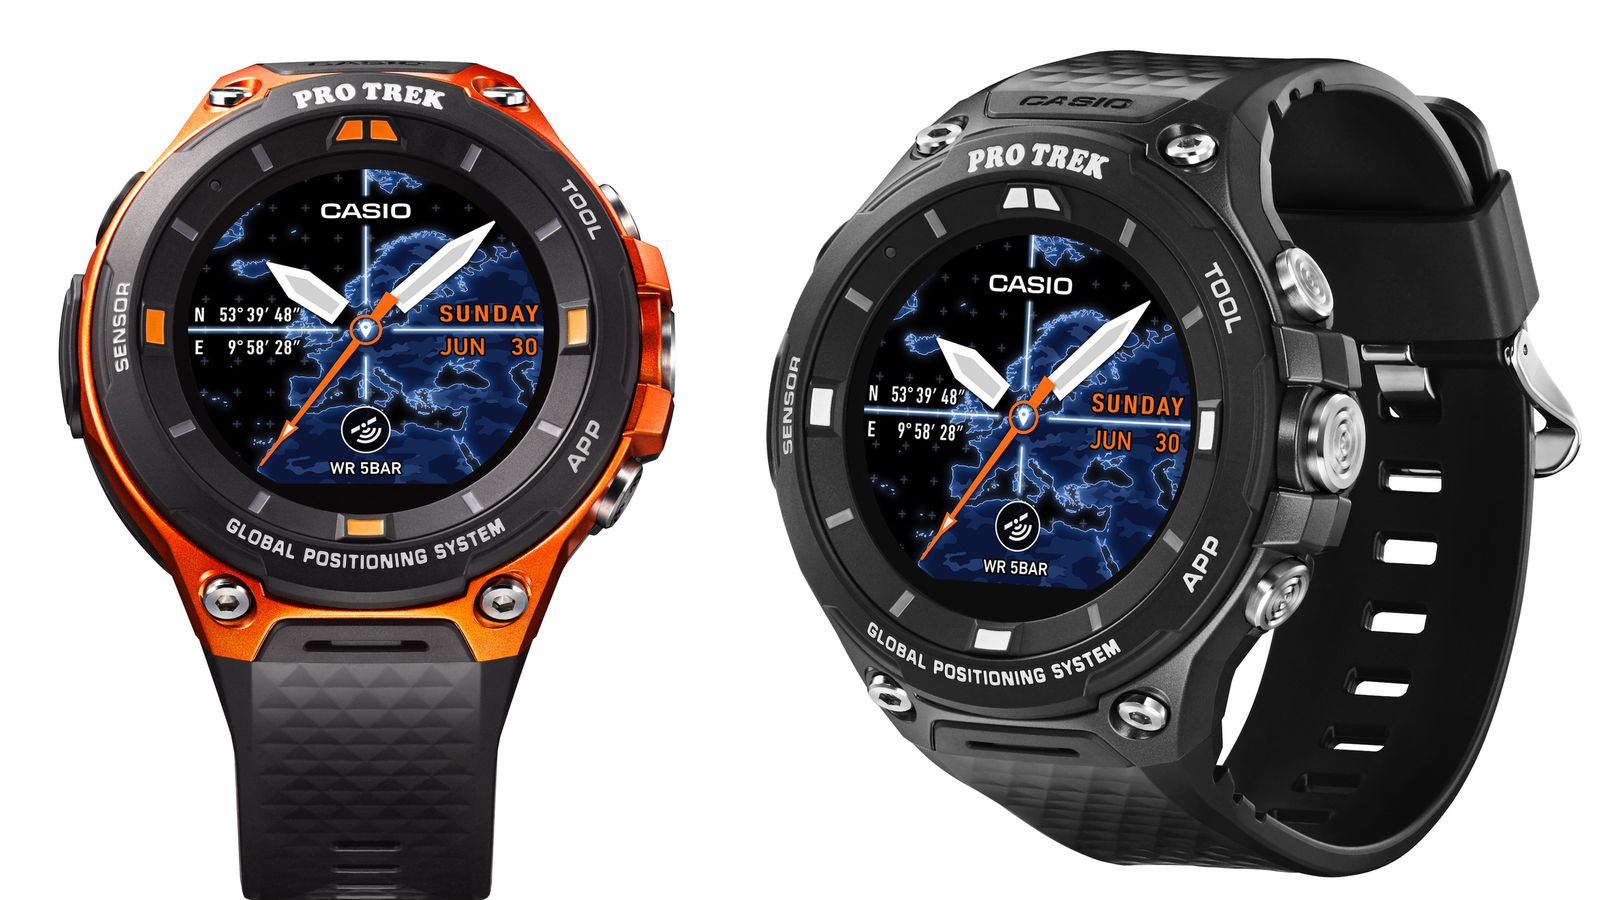 Garmin Gps Watch >> Casio's new outdoor smartwatch adds GPS, offline maps, and ...